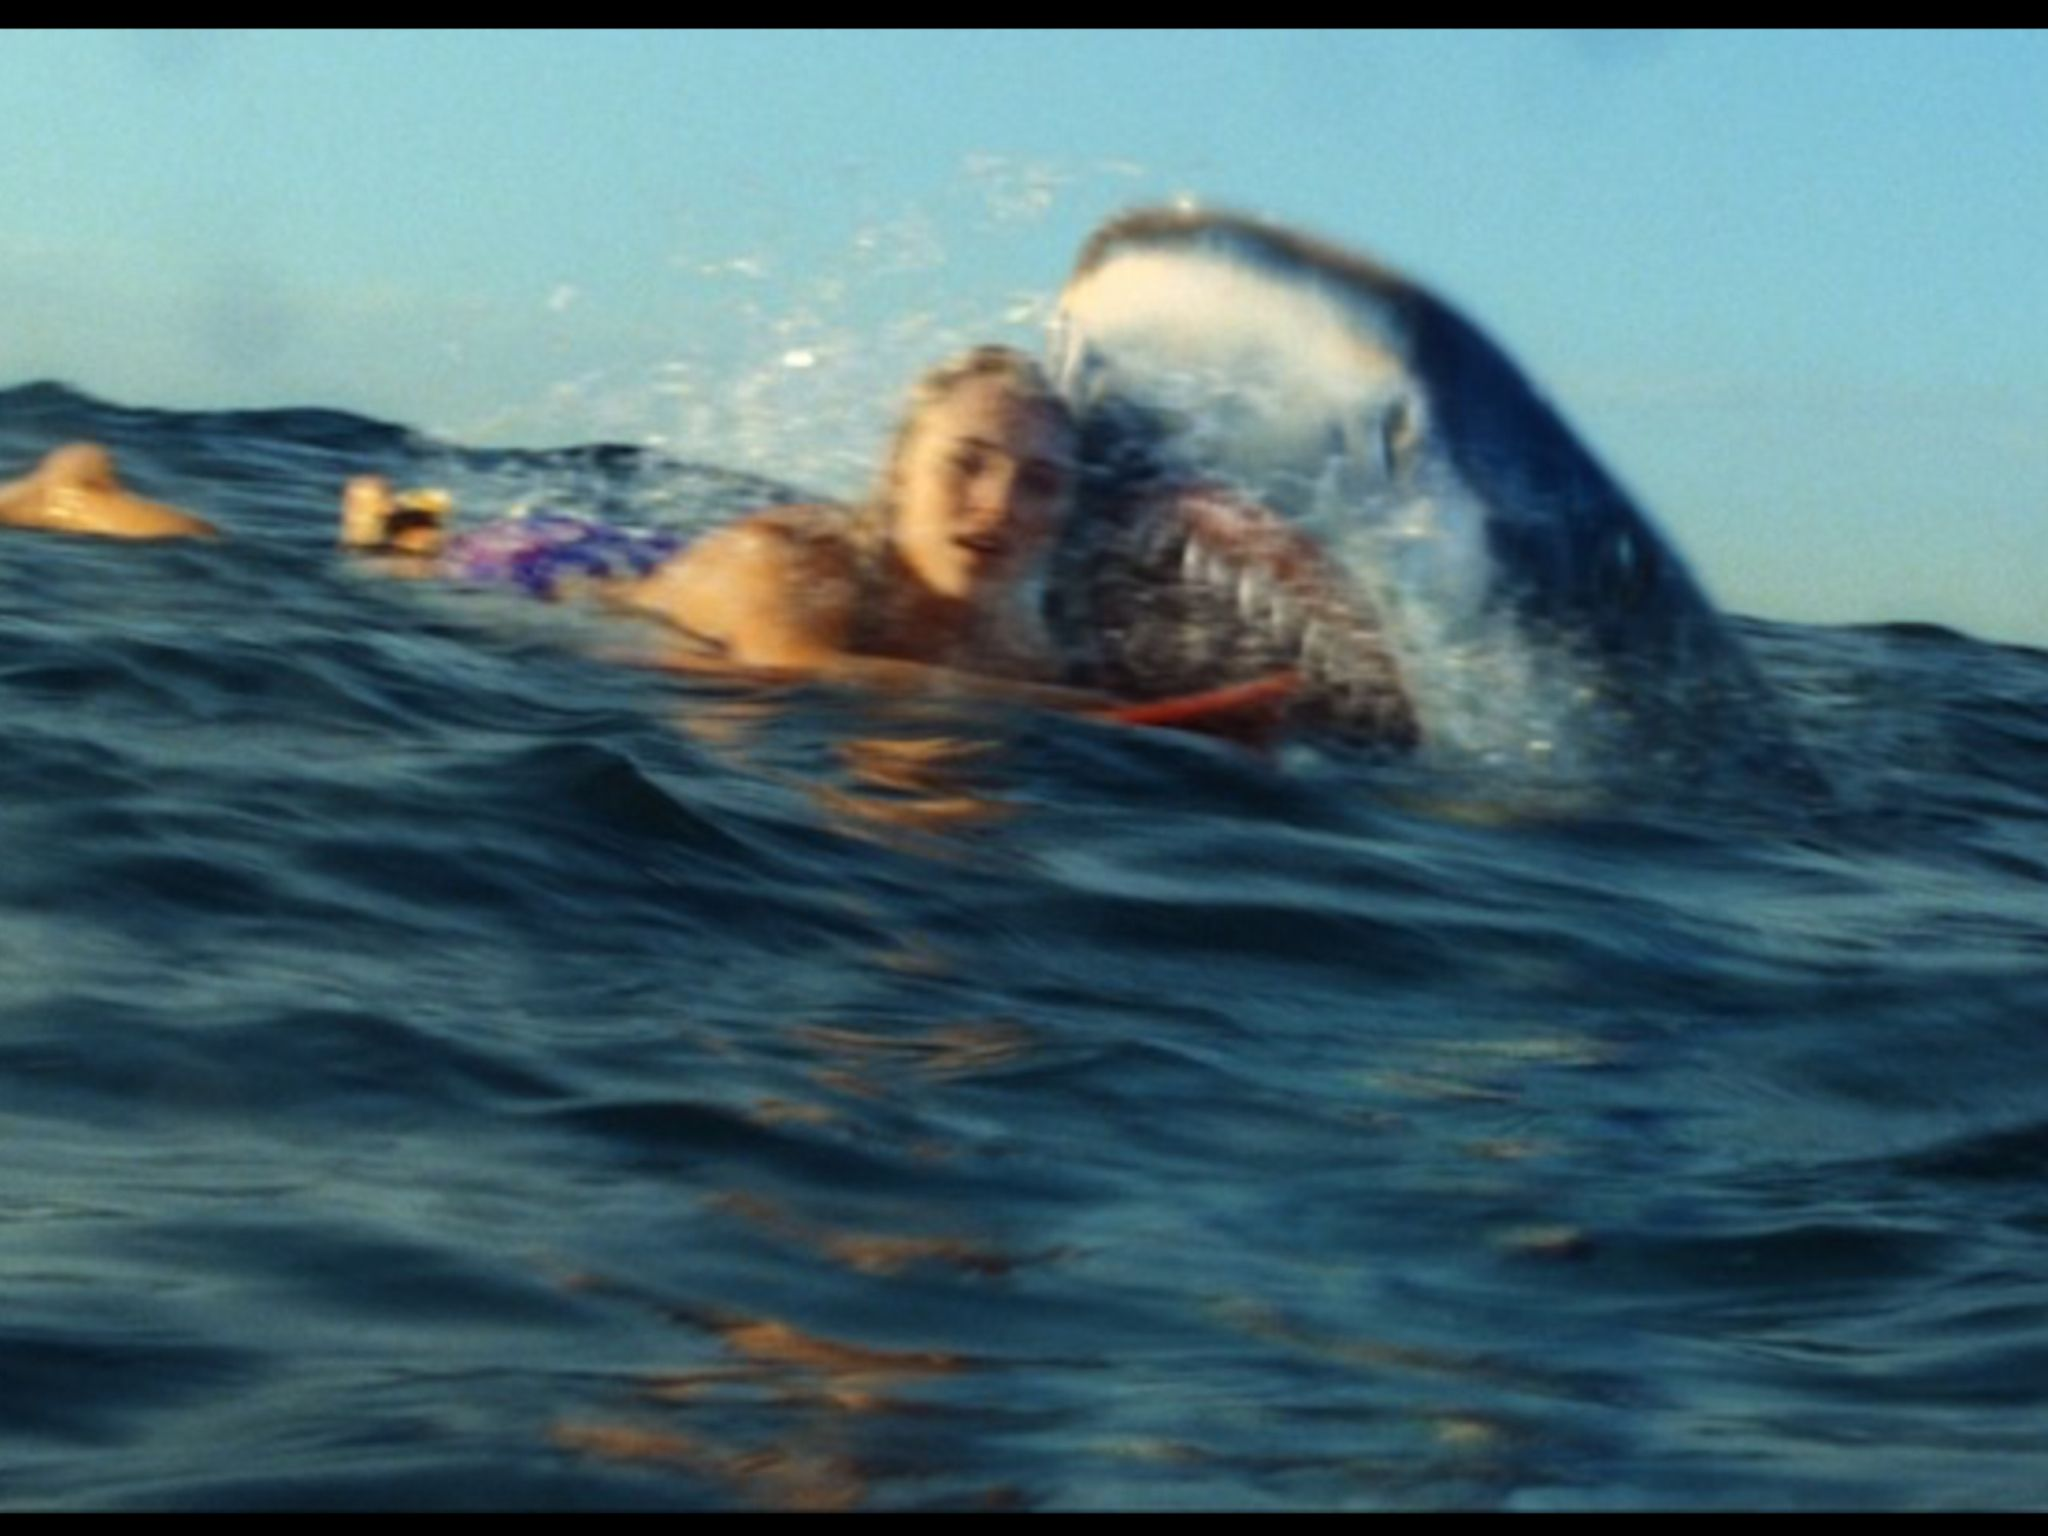 Shark Attack On Soul Surfer Soul Surfer Surfing Surfer